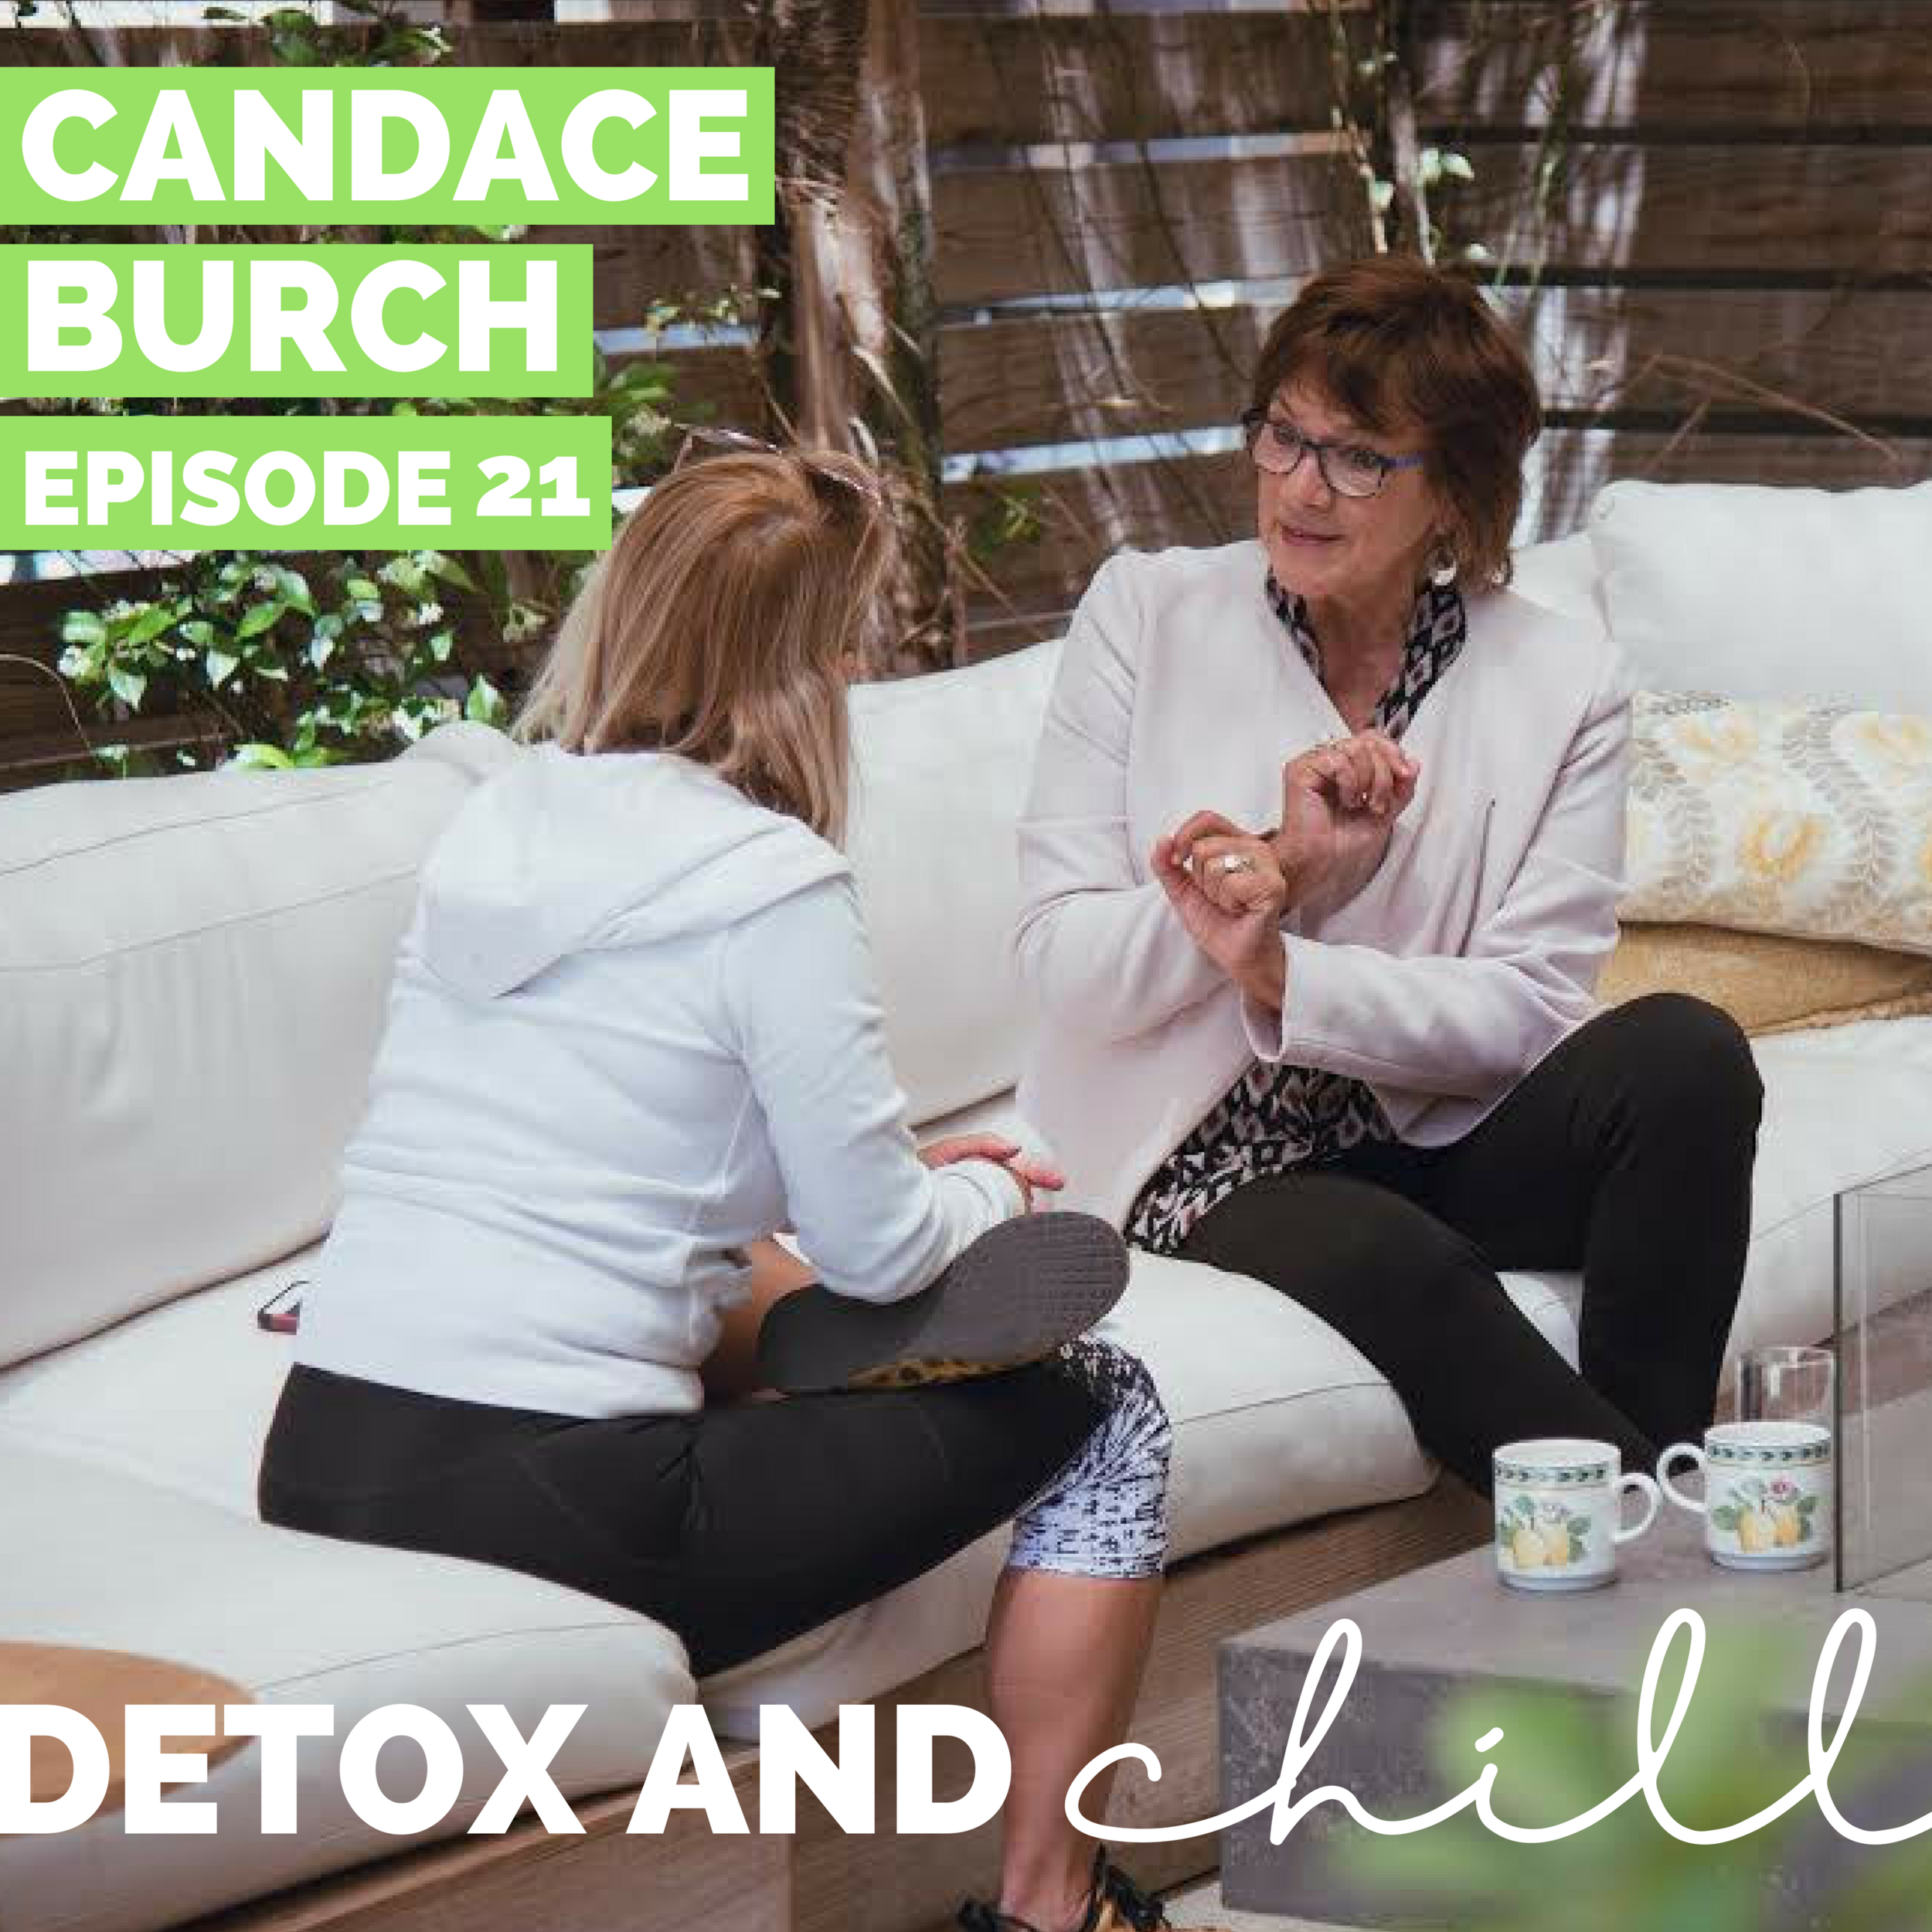 Episode #21: Candace Burch // Hormone Expert // What's Really Going On In Your Body & Why You Might Want to Toss Your Birth Control - Today we're back with a really really special episode. Candace Burch is the a Hormone Health educator that reconnected Beck and Meg (whether she knew it or not), sparked their passion for wellness, and inspired them to start their own wellness and lifestyle podcast.We were so lucky to sit down with Candace in person, as she just so happened to be in Boston for a week. She was just as amazing in person as all of the incredible podcasts that she has been featured on.Candace's work with hormonal health involves being a public speaker, hormone health educator, and private consultant, and counseling countless women and men on all things hormonal.Her goal is to help people re-balance their hormones to relieve symptoms and restore balance in their lives. In her own life, she practices what she preaches as often as possible and maintains balance by doing what comes naturally, deliberately.In this episode we talking about…-What our different hormones are and what their purpose is;-What symptoms you might experience if your hormones are out of balance;-Beck and Meg share their own personal hormone stories and struggles;-What testing your hormones entails, and what it can tell you;-How Candace interprets the results of your hormone testing;-Birth control and how to prepare your body to come off of birth control (if you desire);-Some of her favorite supplements and tips to get your period back after coming off of birth control.We've heard Candace speak so many times, but we ALWAYS learn something new and different each time we connect. Candace was beyond generous to share TWO discount codes with our listeners for $50 off the Hormone Jumpstart (DETOXANDCHILL) or Gold Standard Package; and $100 off of the Hormone & Weight Balance Package (DETOXANDCHILL2). Testing your hormones is SO important if you're not feeling your best, and we're so grateful Candace is giving us and our listeners this amazing discount!We cannot WAIT for you guys to hear this episode and would love to know what you think. Hit us up on Instagram (@detoxandchillpodcast), our new Facebook group (*SUPER EXCLUSIVE* Detox & Chill Podcast Group), and via email. We LOVE hearing from you guys! Don't forget to rate and review and subscribe on iTunes!Love you all,Meg & BeckFind Candace here:Candace: http://www.yourhormonebalance.comInstagram: https://www.instagram.com/yourhormonebalance/